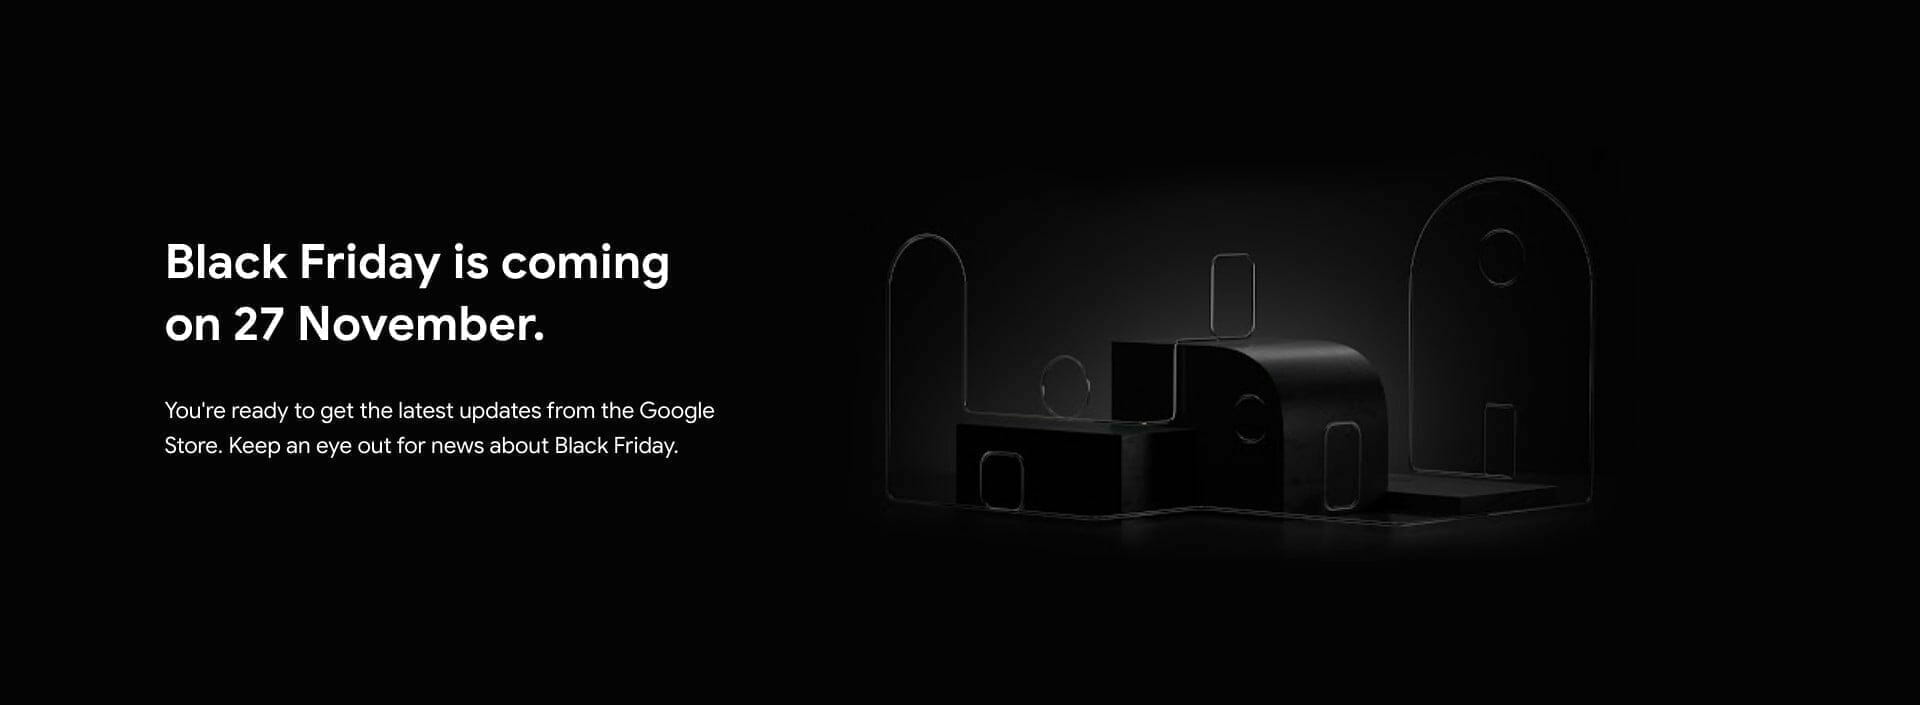 Black Friday is coming on 27 November in Singapore